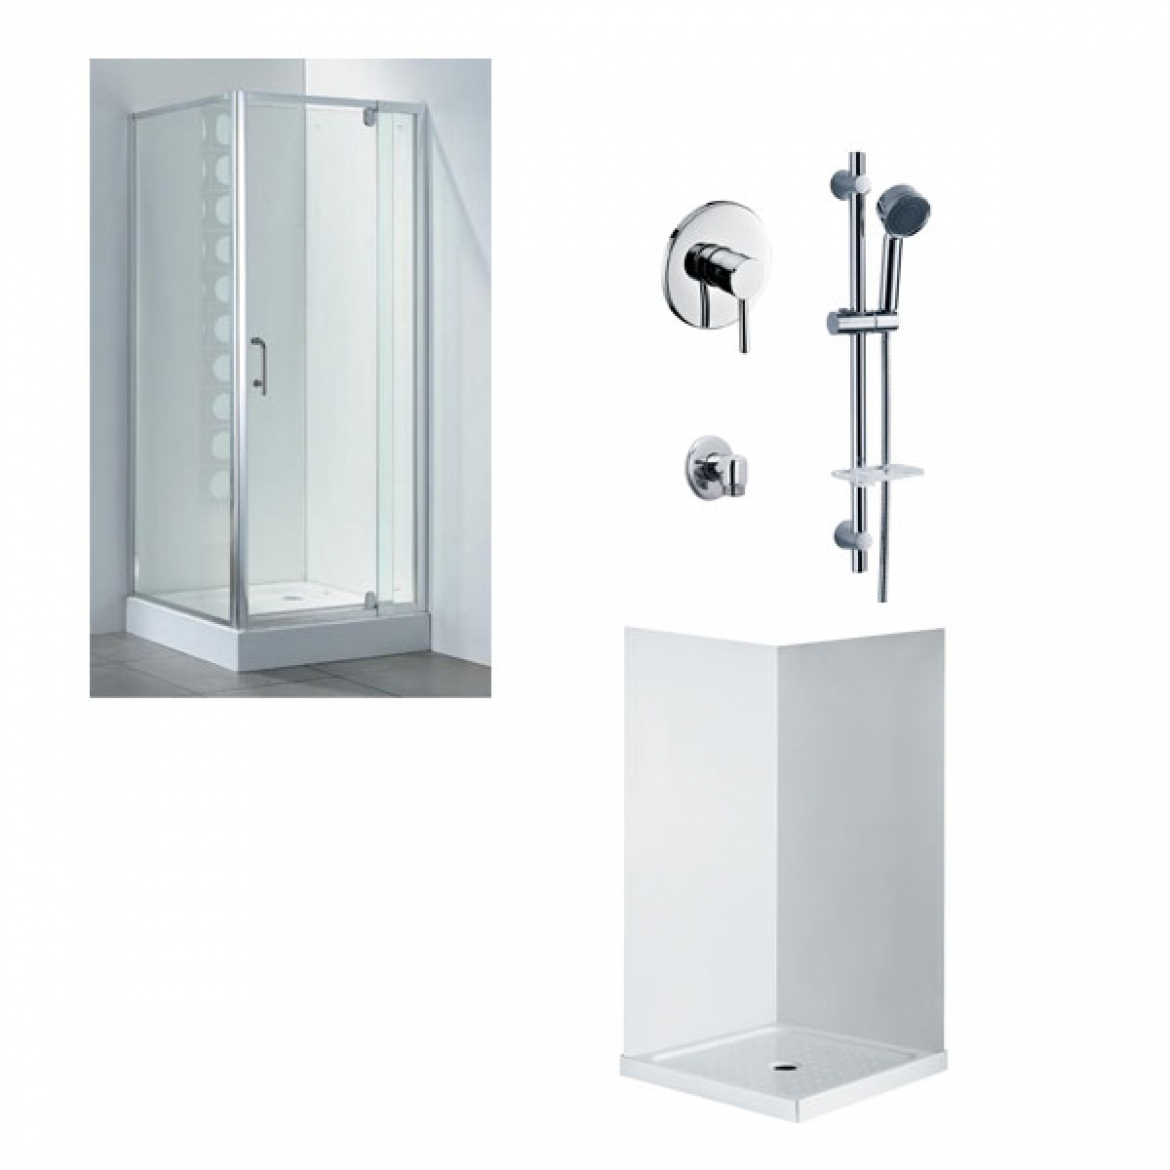 Swing door shower screen+Shower Base+Wall liner+Taps